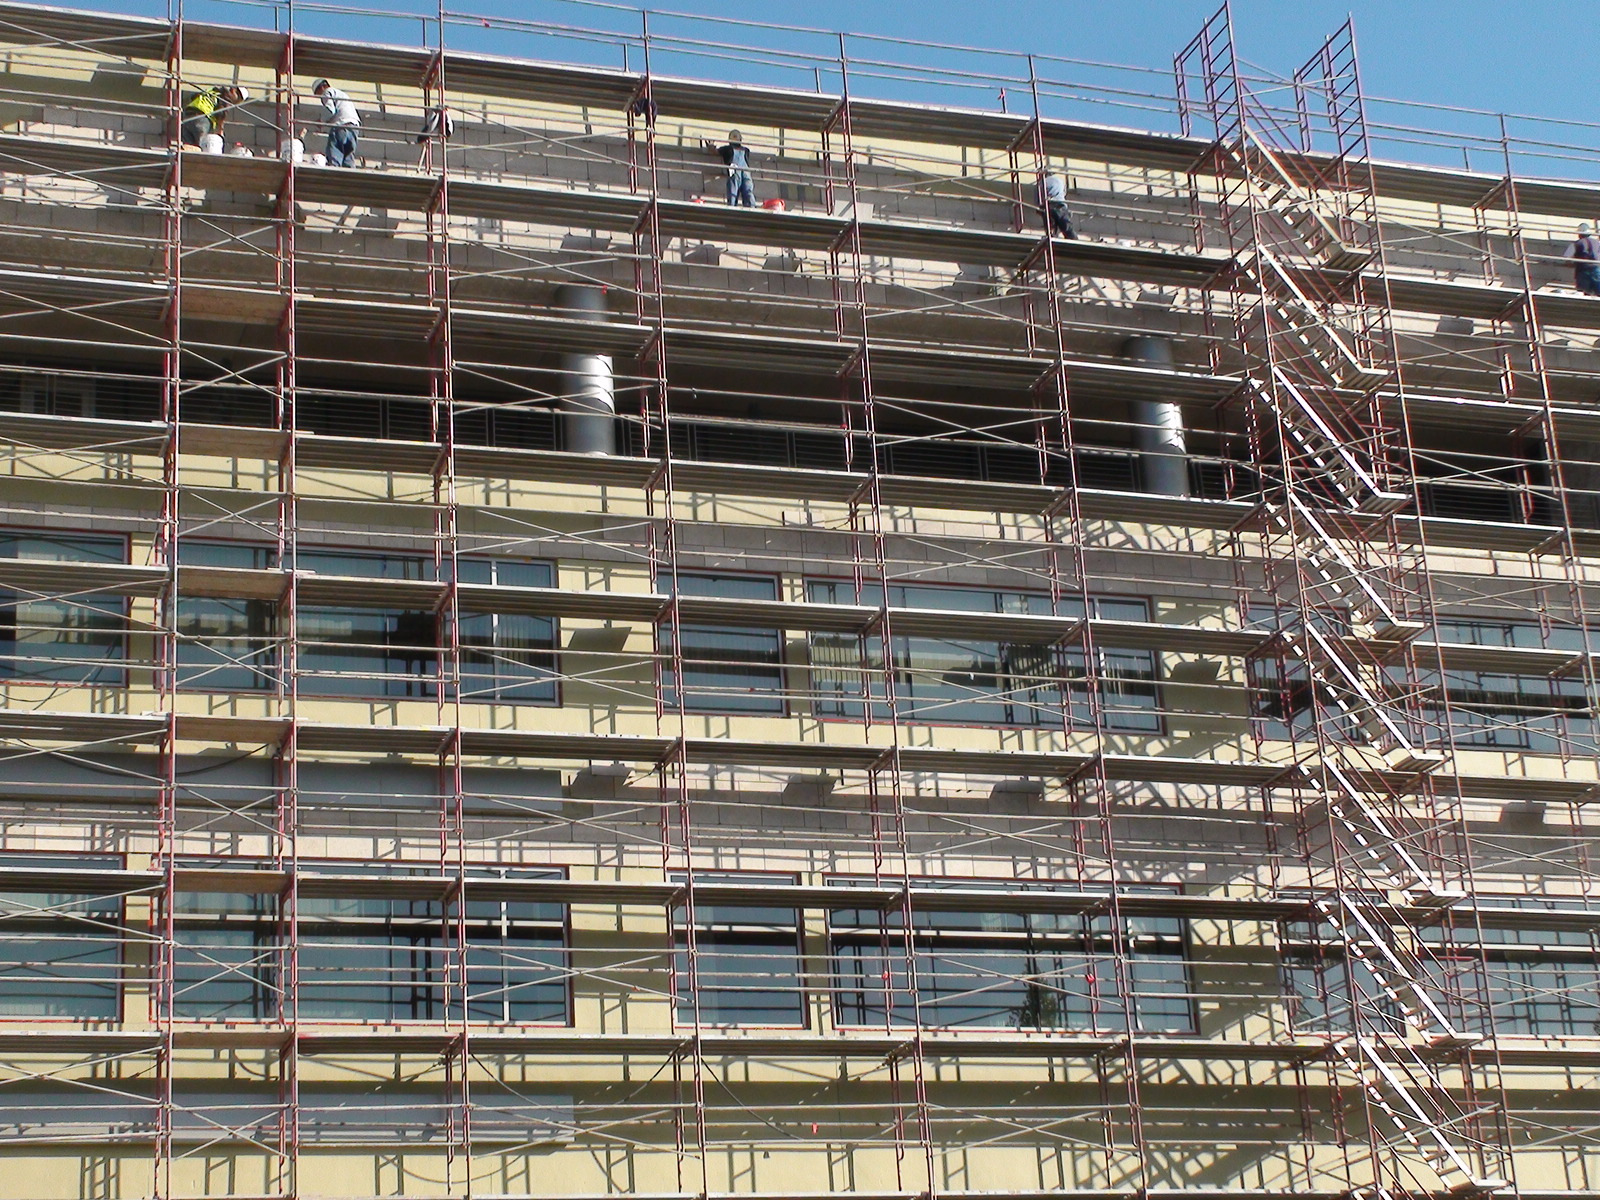 This 305 x 610-mm (12 x 24-in.) Portuguese limestone was adhered to the exterior walls of an offi ce building using scaffolding.